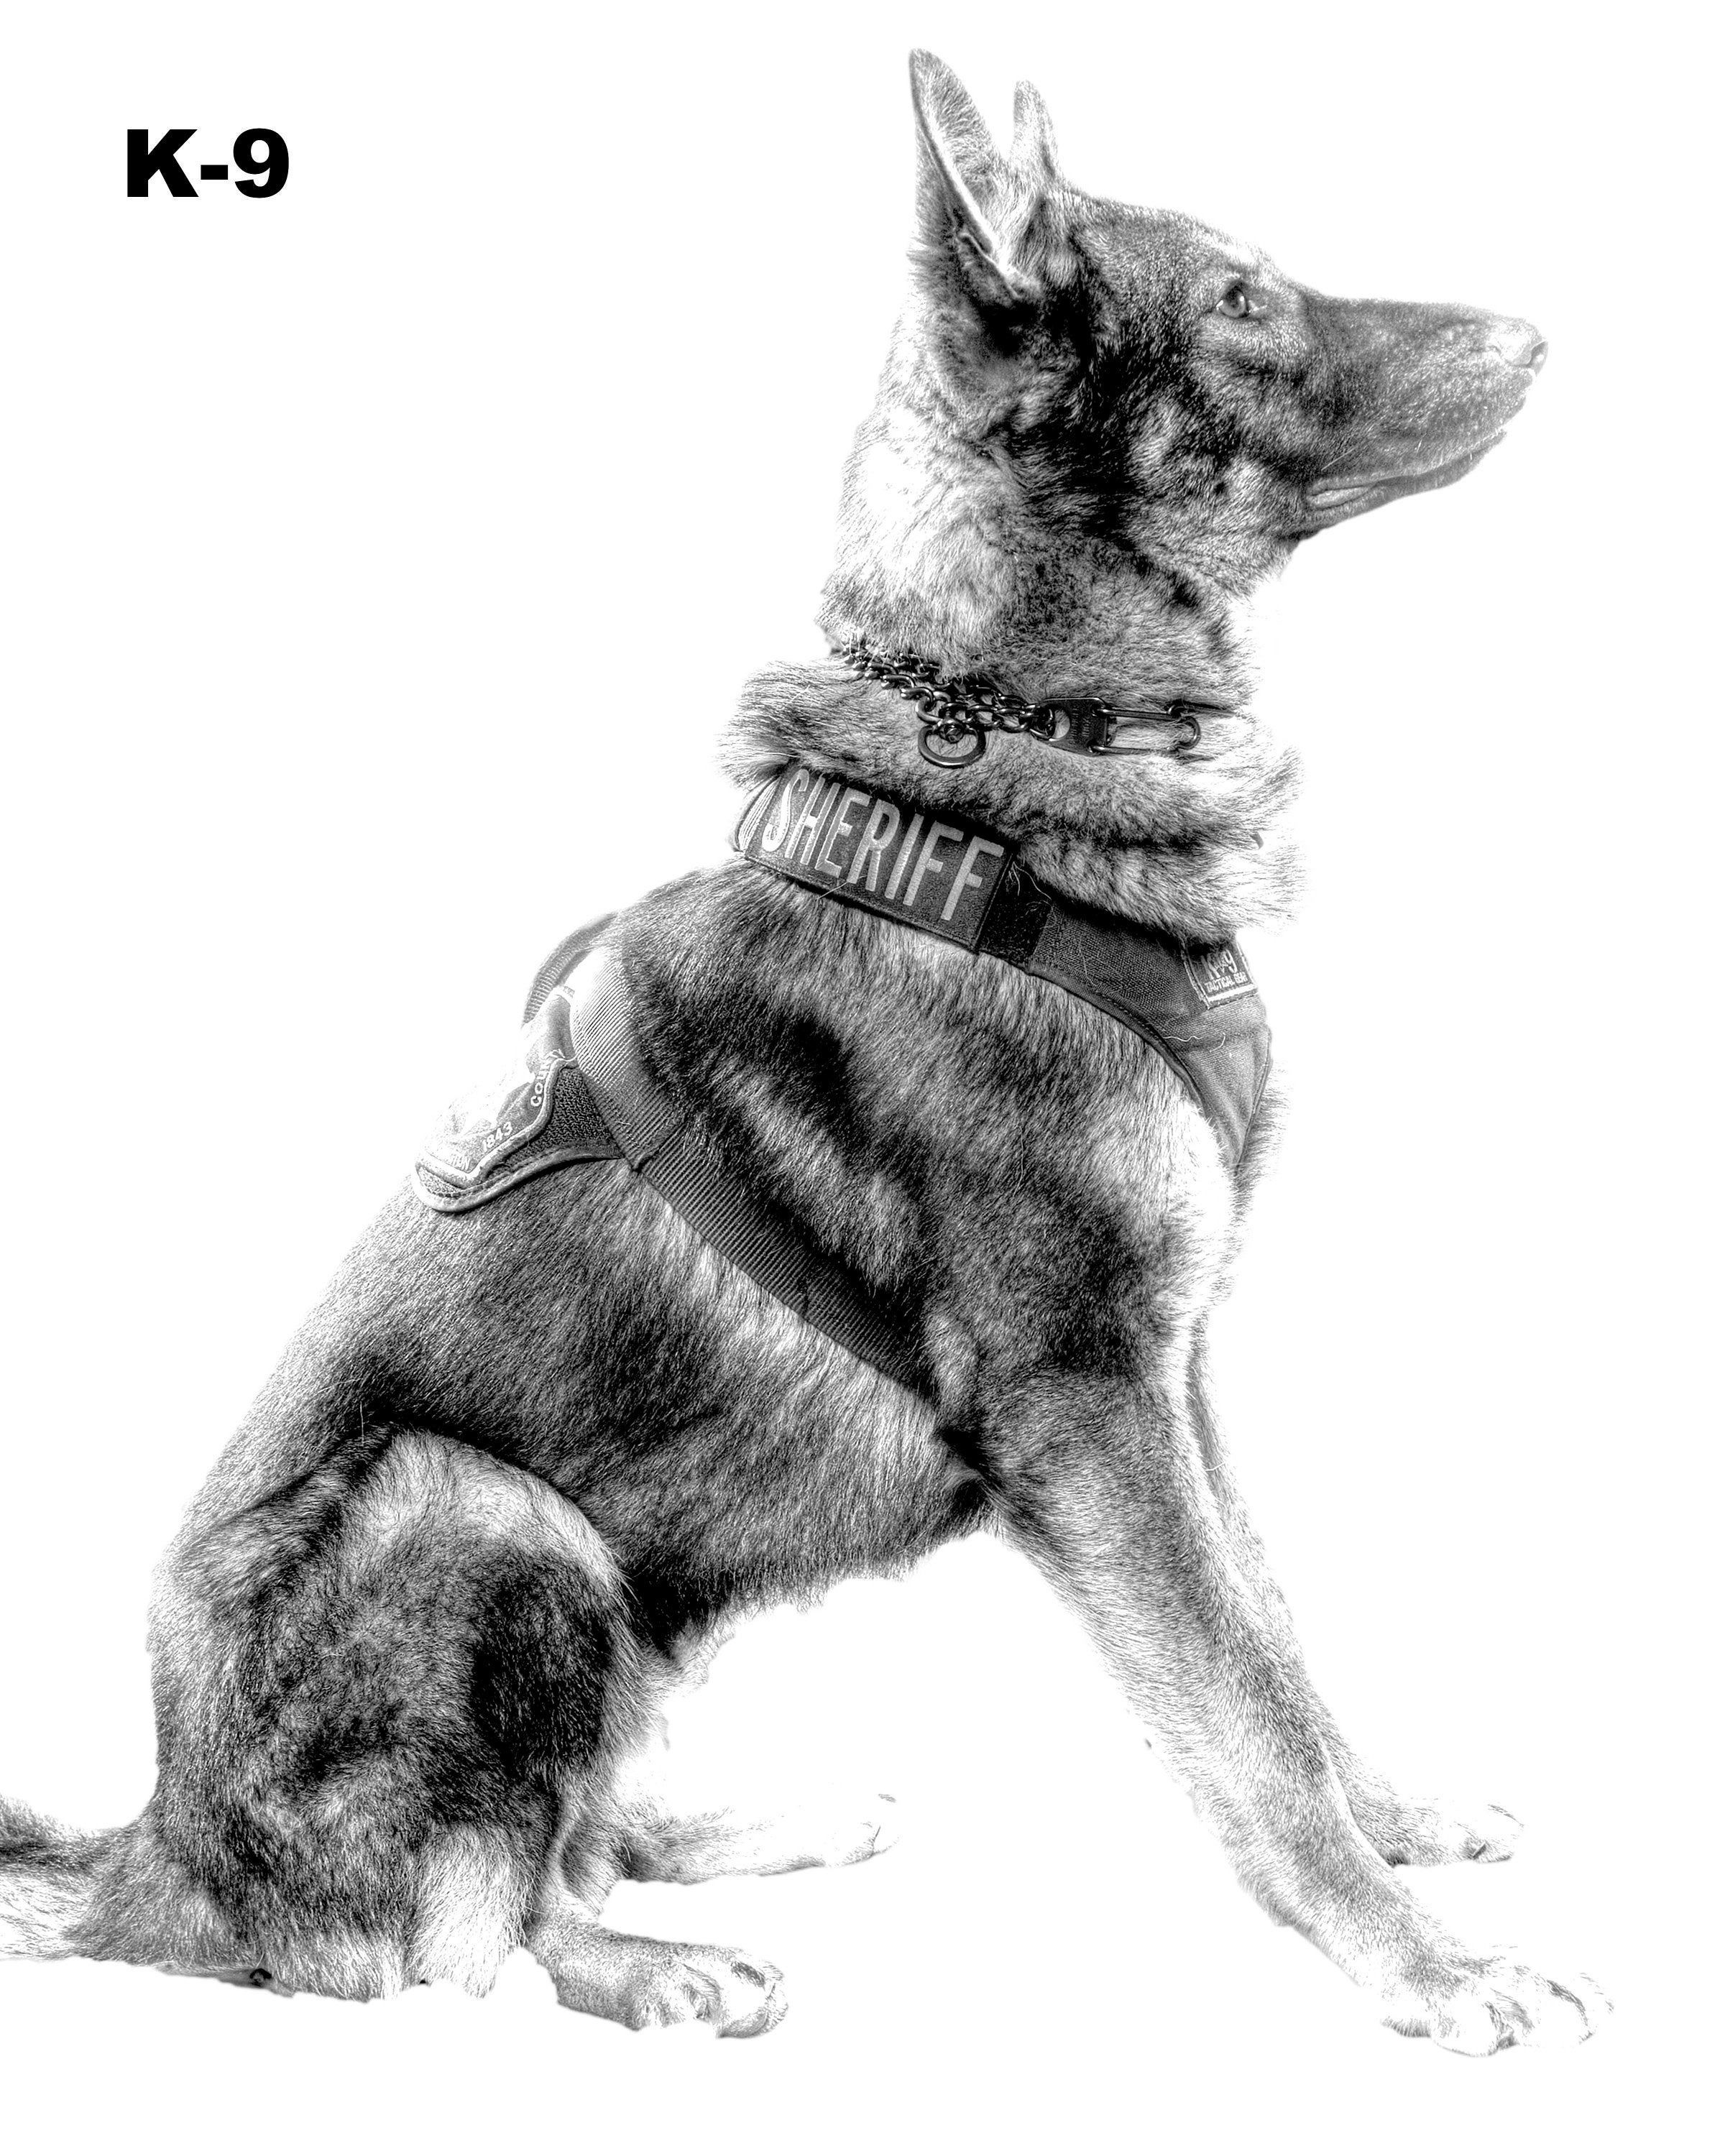 how to draw a police dog k9 officer k9 handler gift police dog man cave art etsy a draw to police dog how